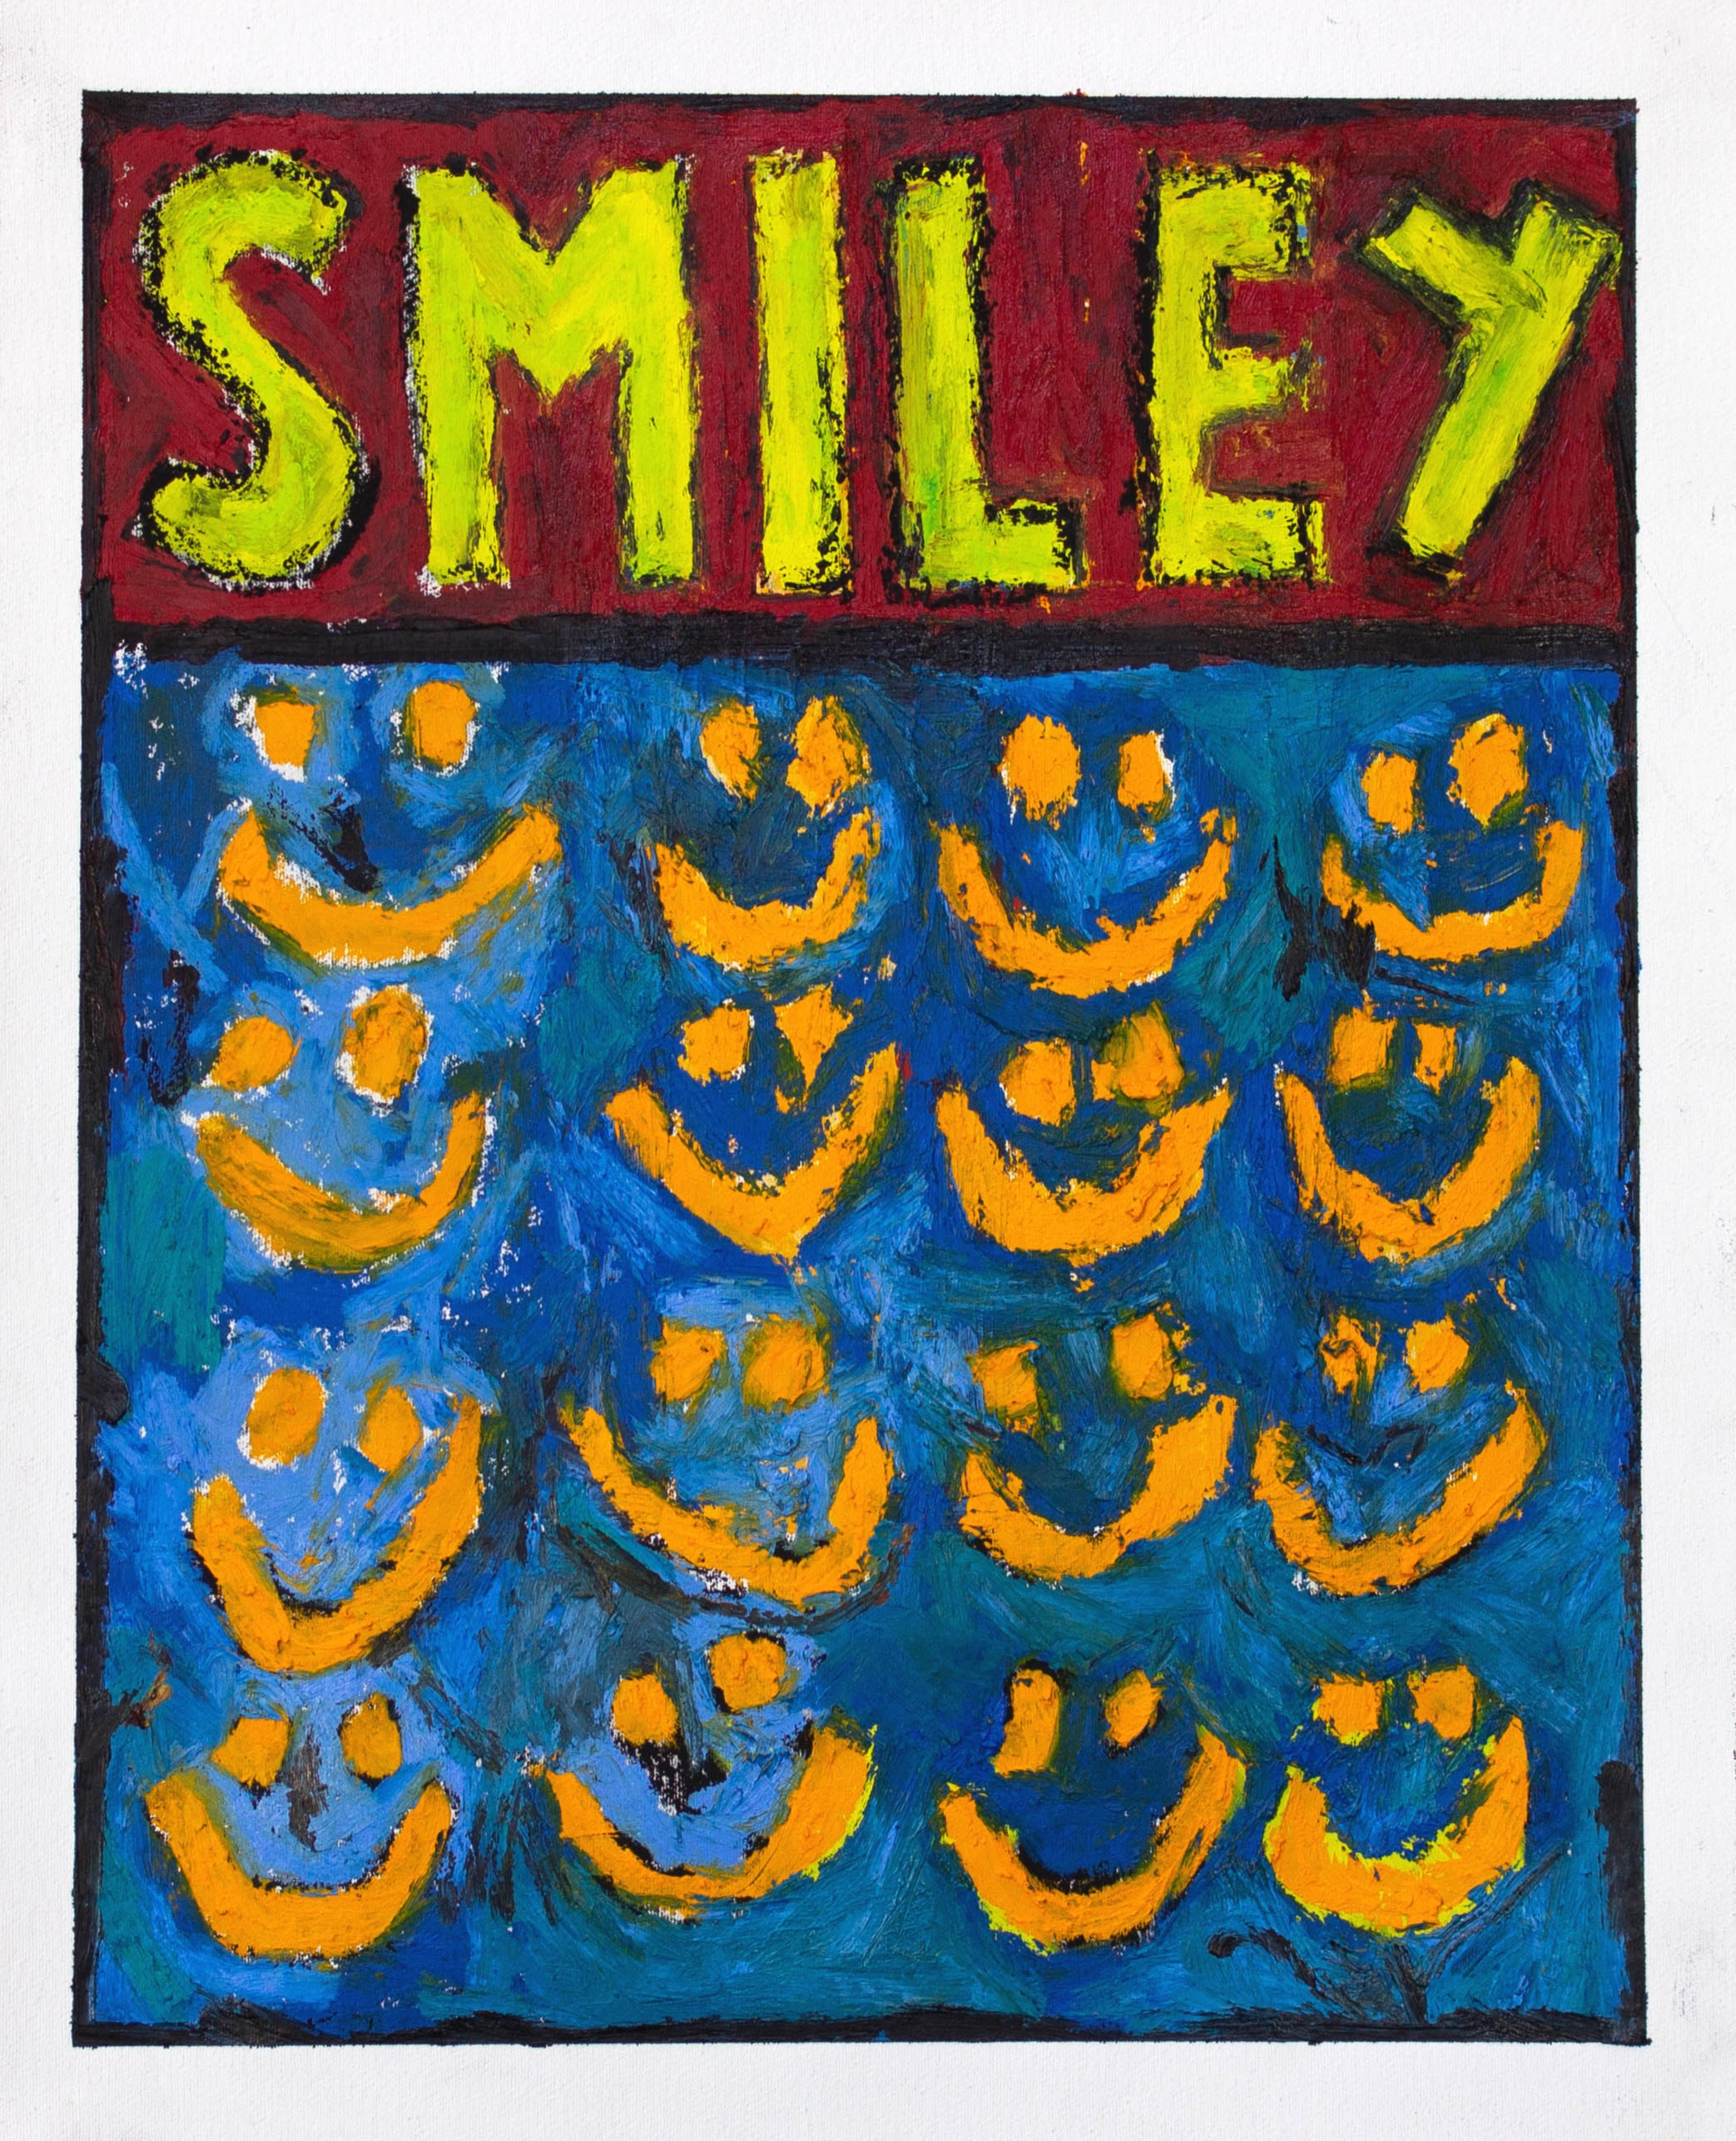 """""""SMILEY CHART"""" / 2019 OILSTICK ON UNSTRETCHED CANVAS FRAMED IN BLACK WITH ARTGLASS AR70 42 X 51 CM 4900 NOK"""